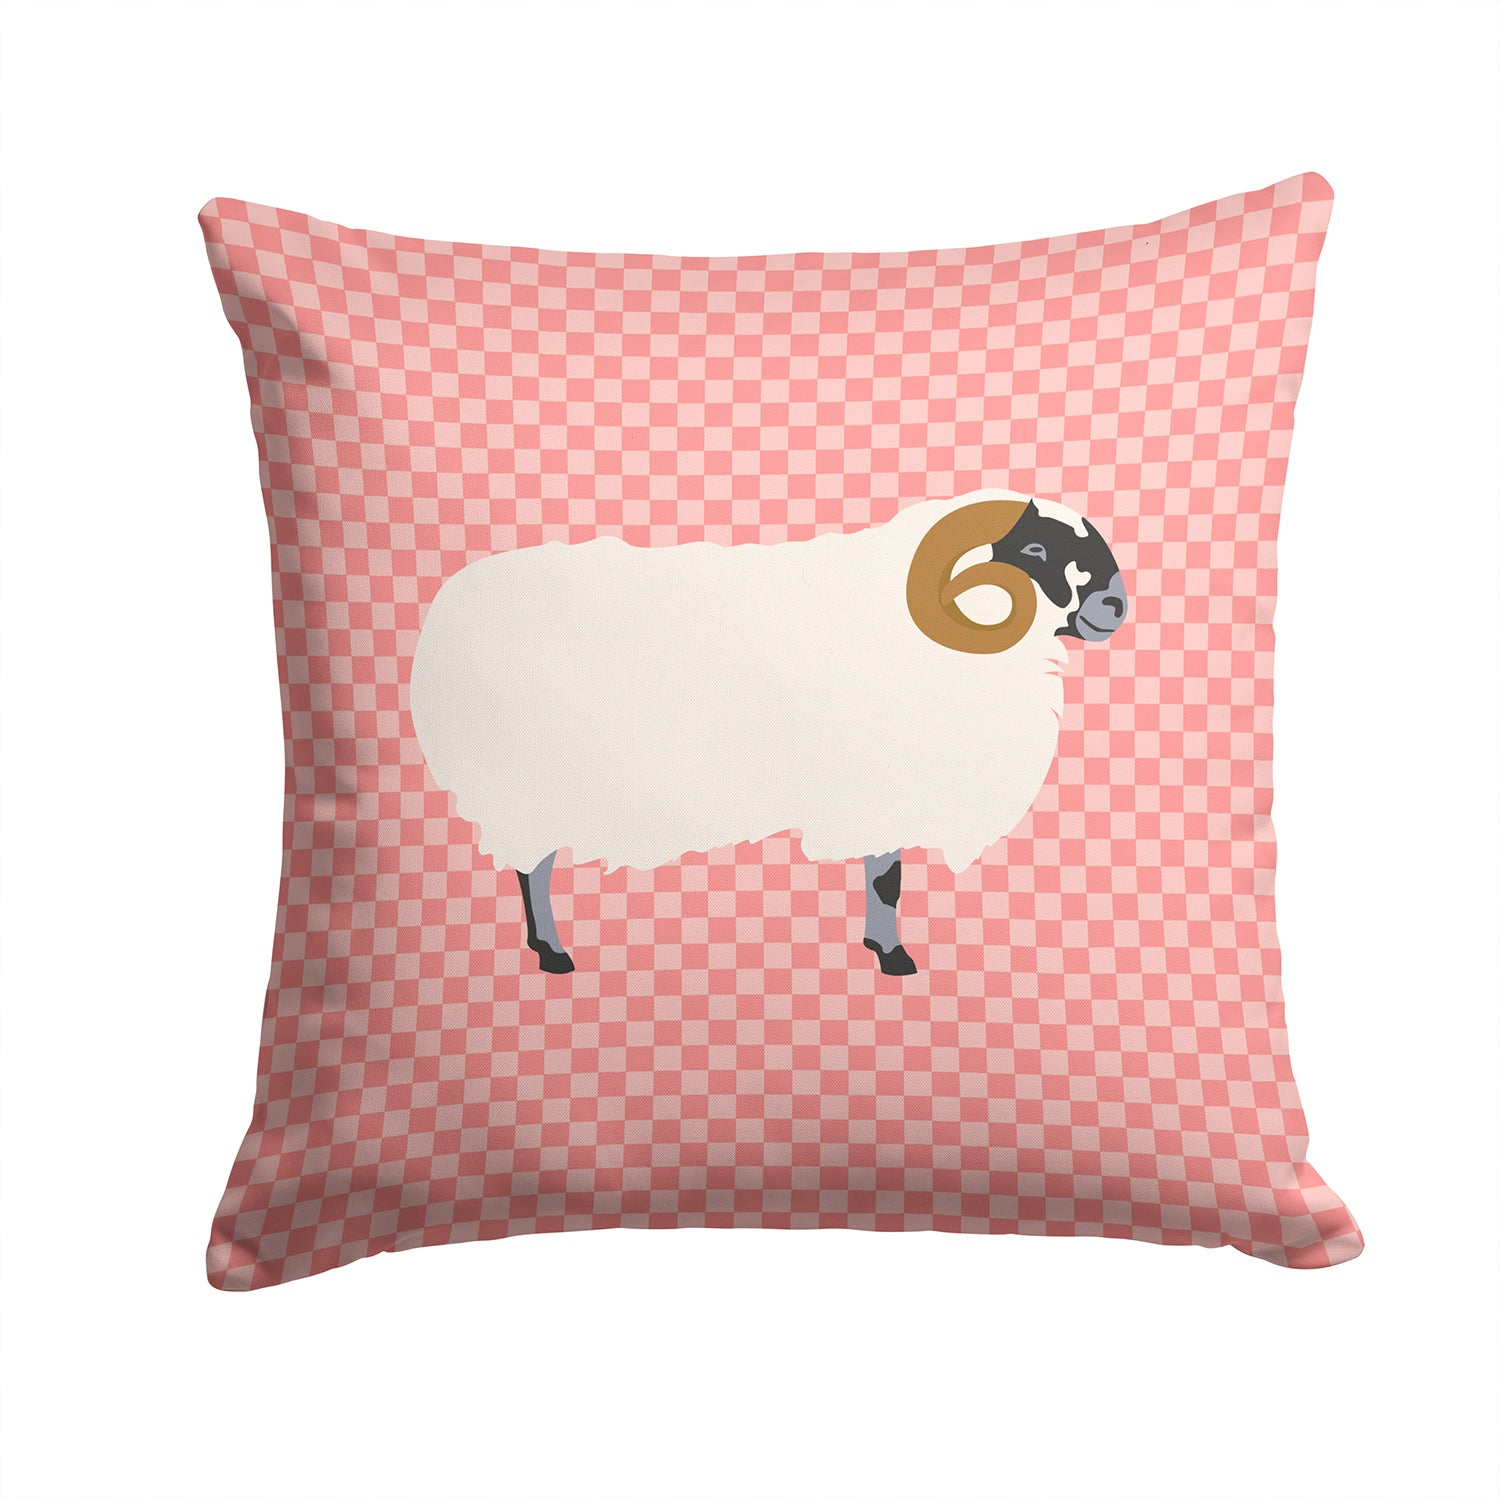 Scottish Blackface Sheep Pink Check Fabric Decorative Pillow BB7973PW1414 by Caroline's Treasures